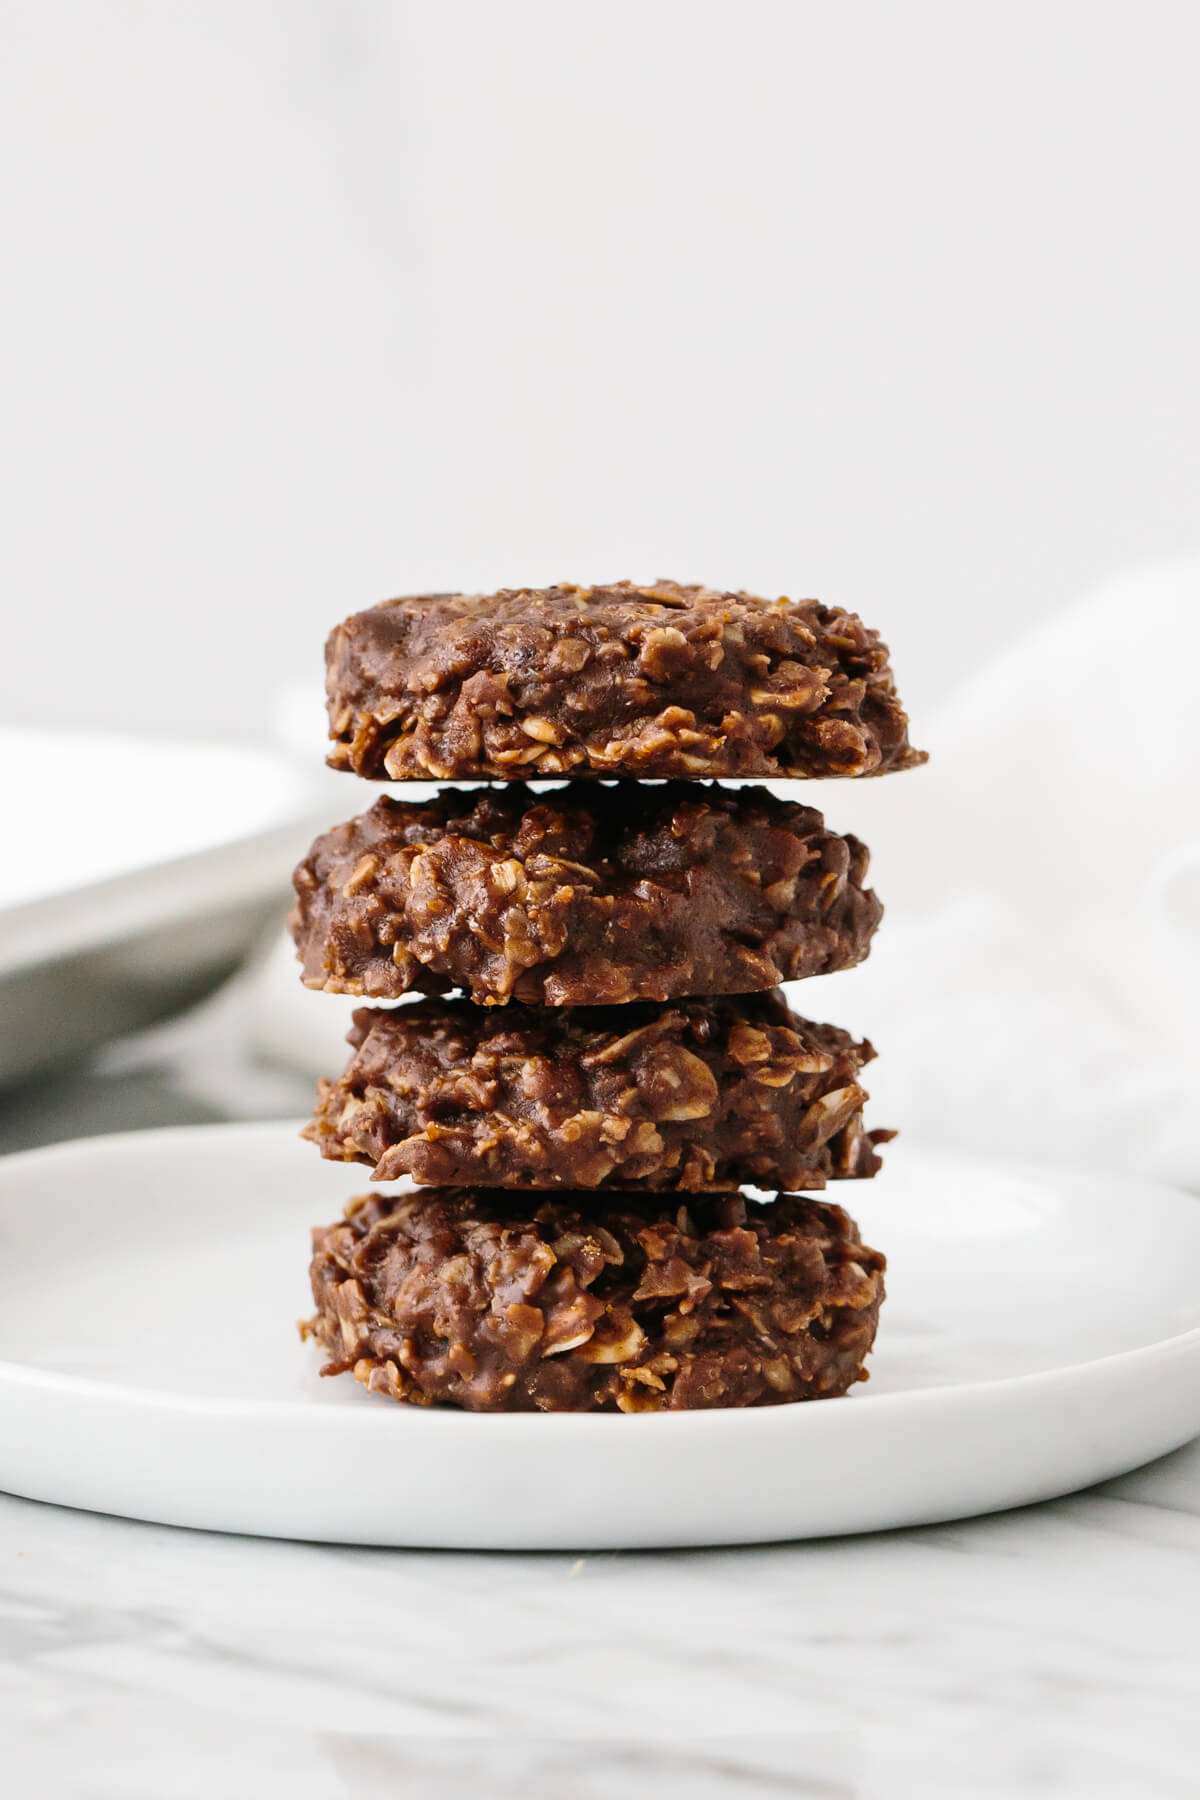 No bake cookies stacked on top of each other on a plate.